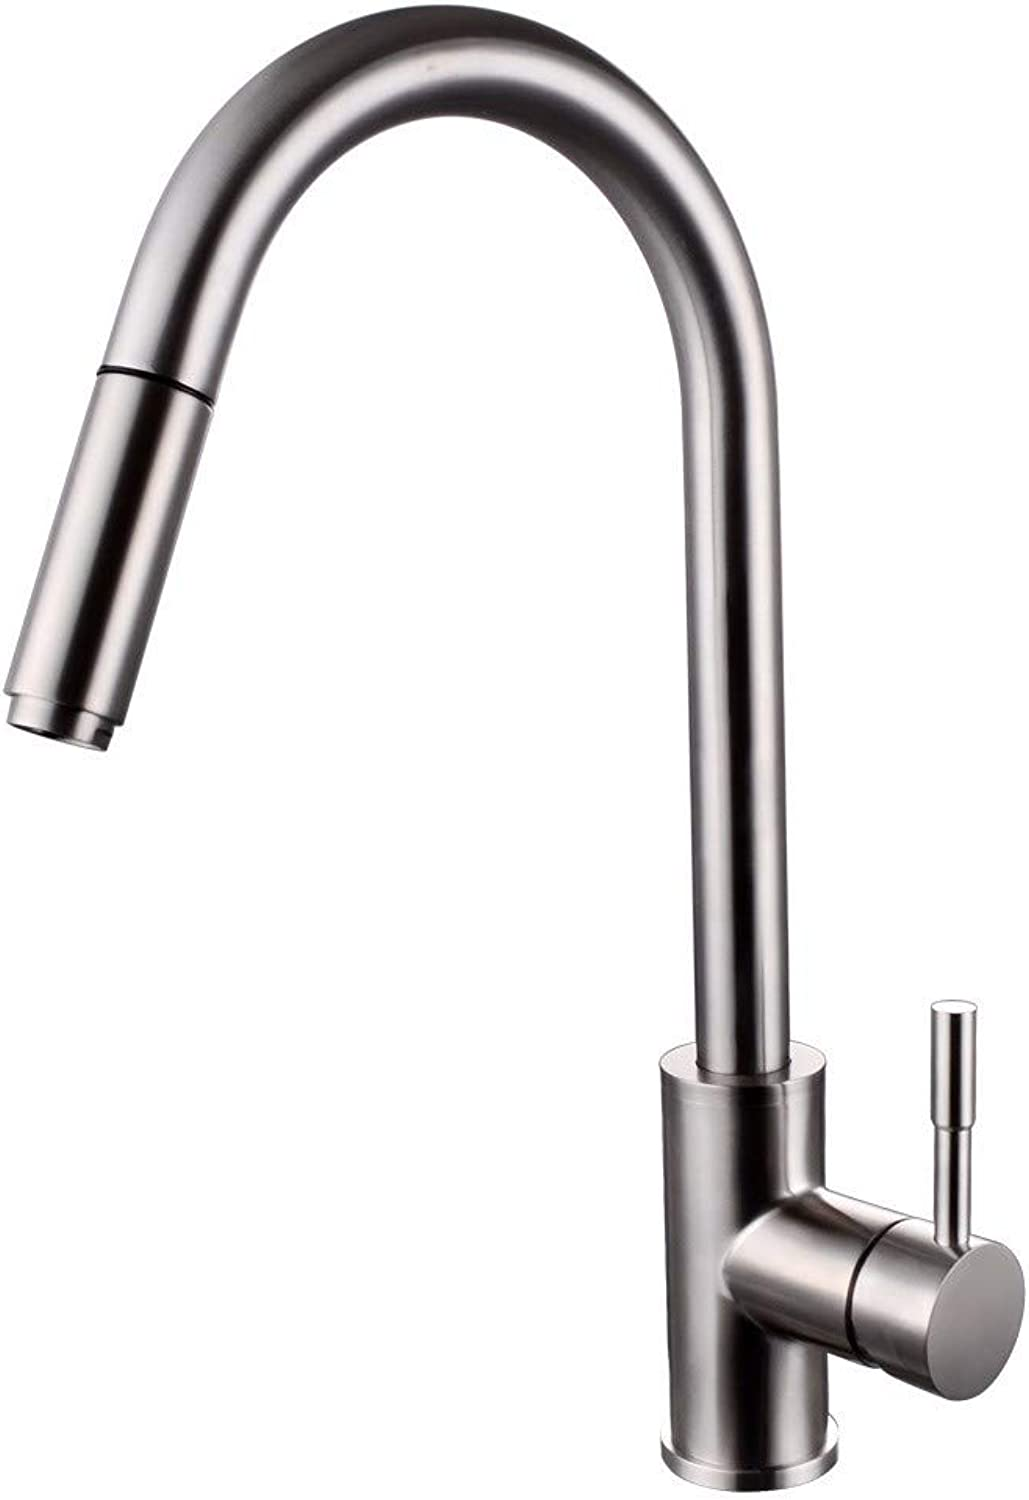 FT-13 Hot and Cold Faucet Retro Faucet Kitchen Bathroom Faucet Stainless Steel Kitchen Faucet Pull-Out Basin Faucet